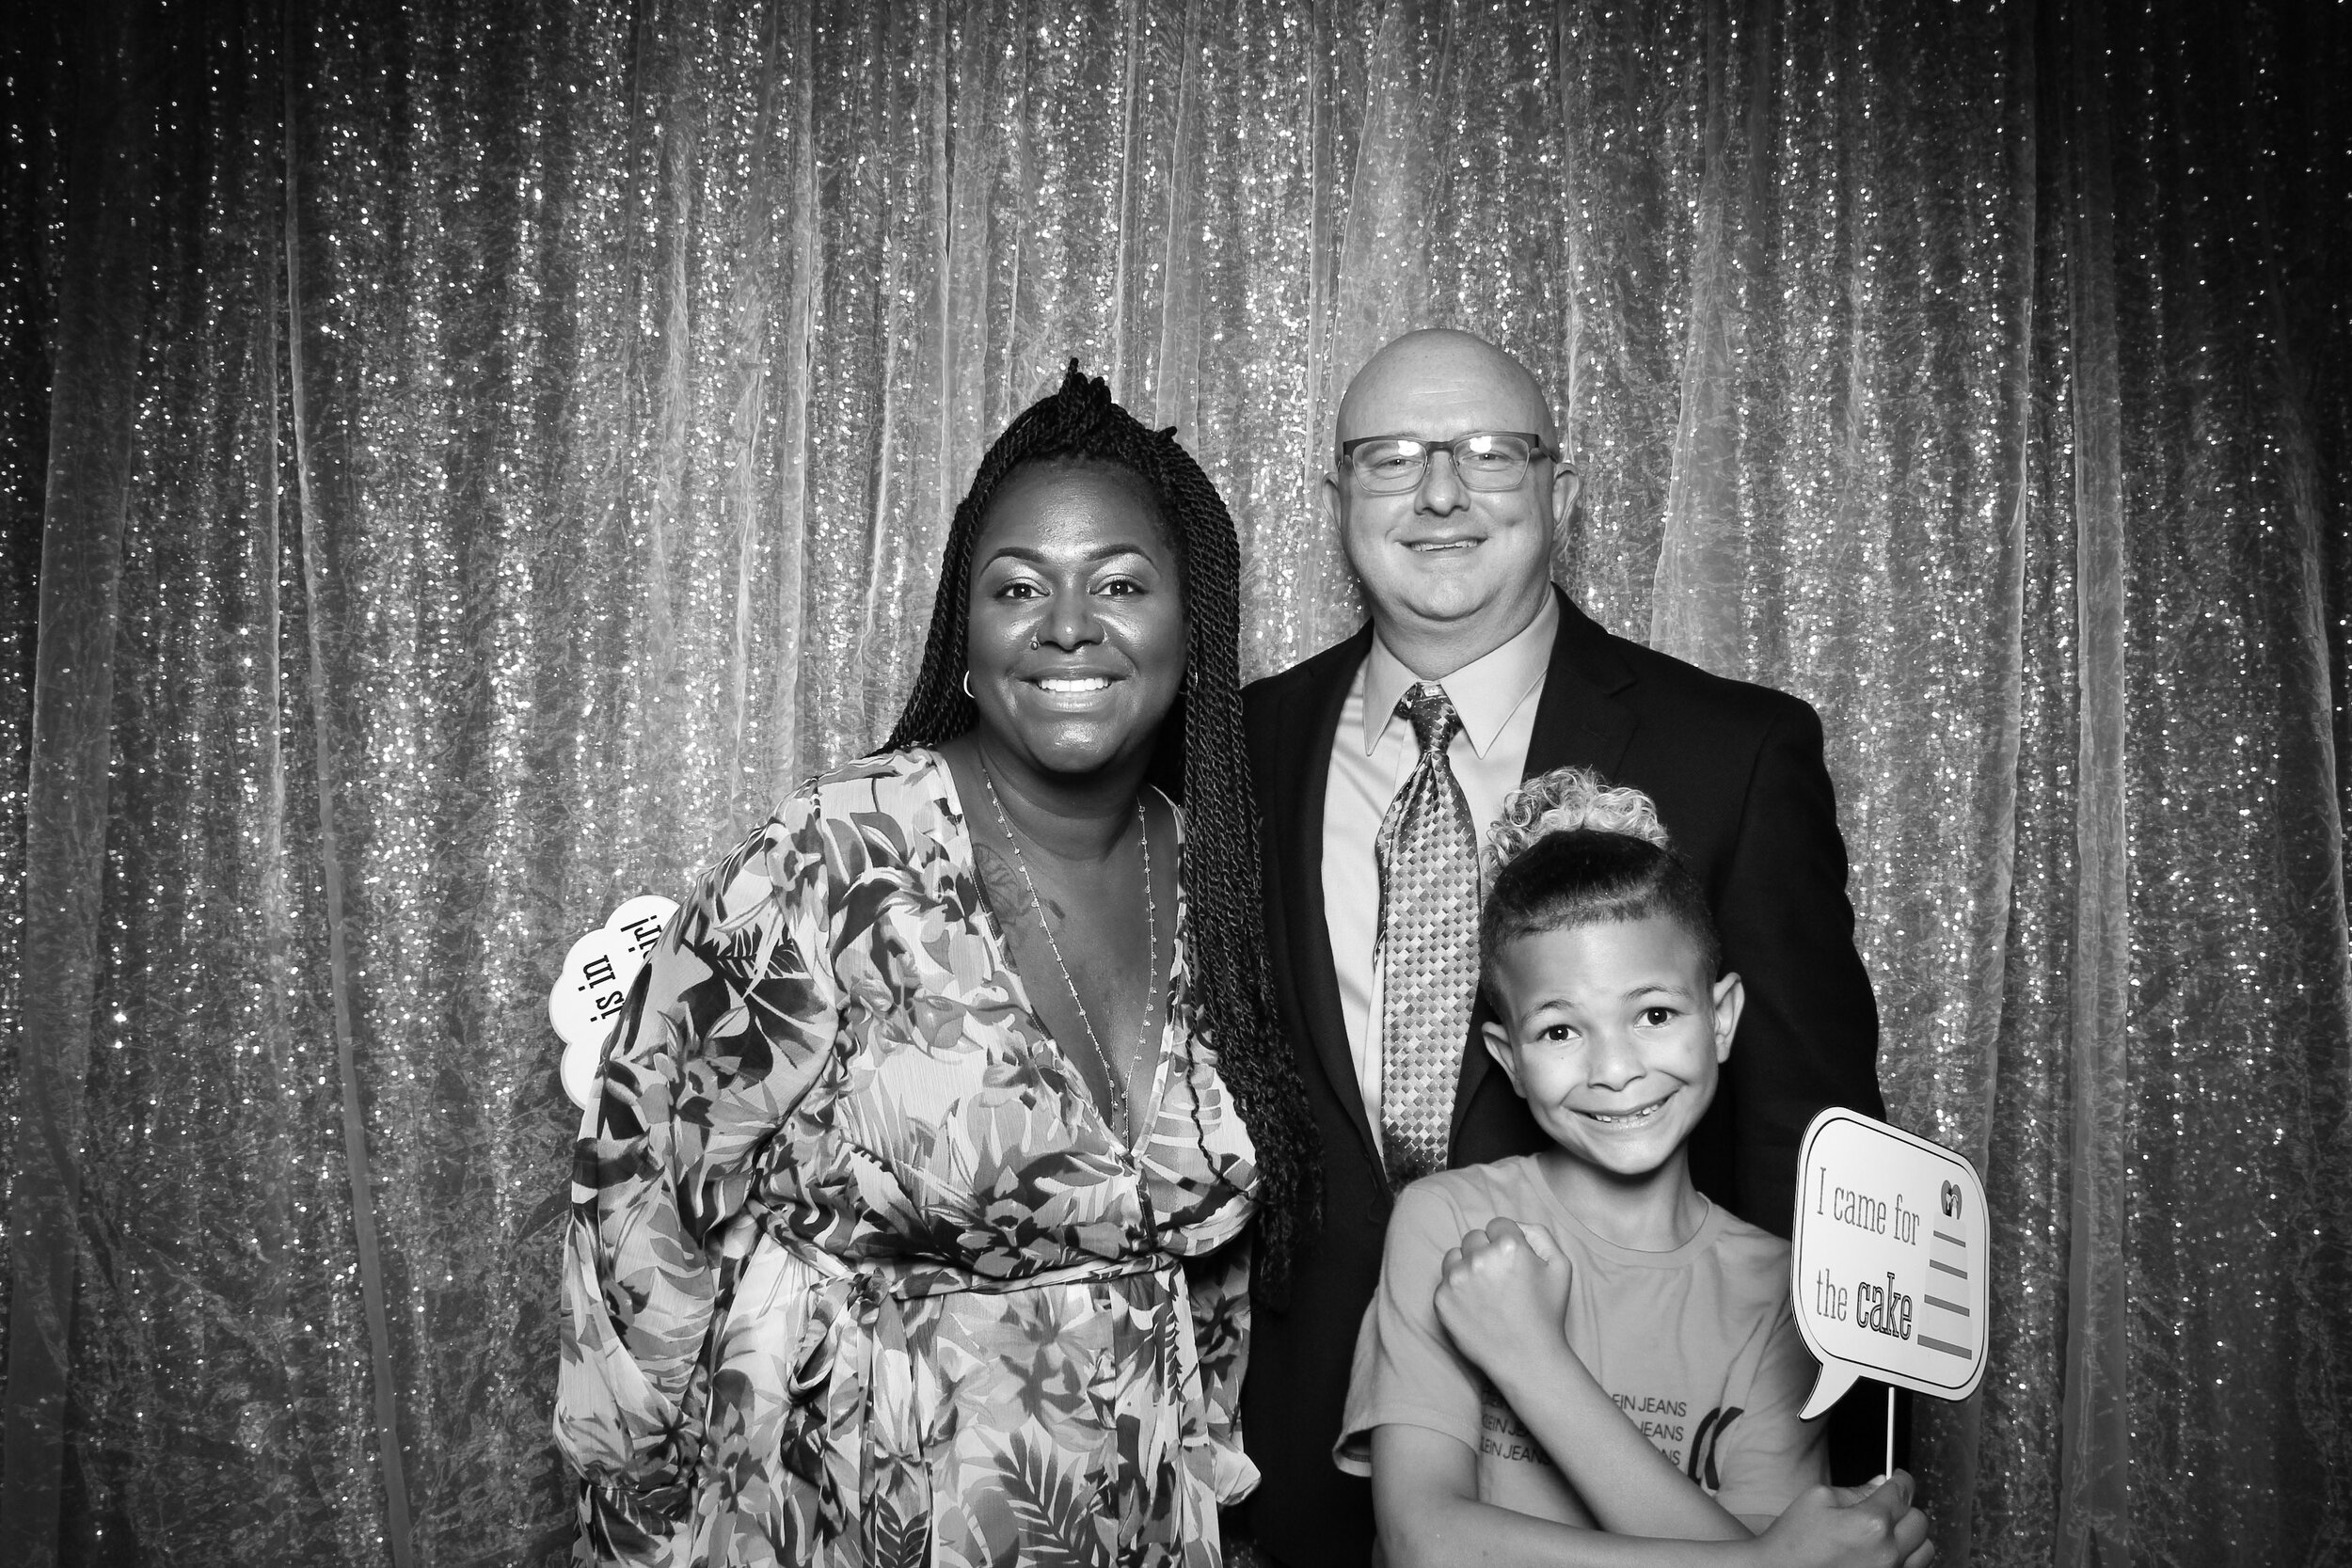 Ravisloe_Country_Club_Wedding_Photo_Booth_06.jpg